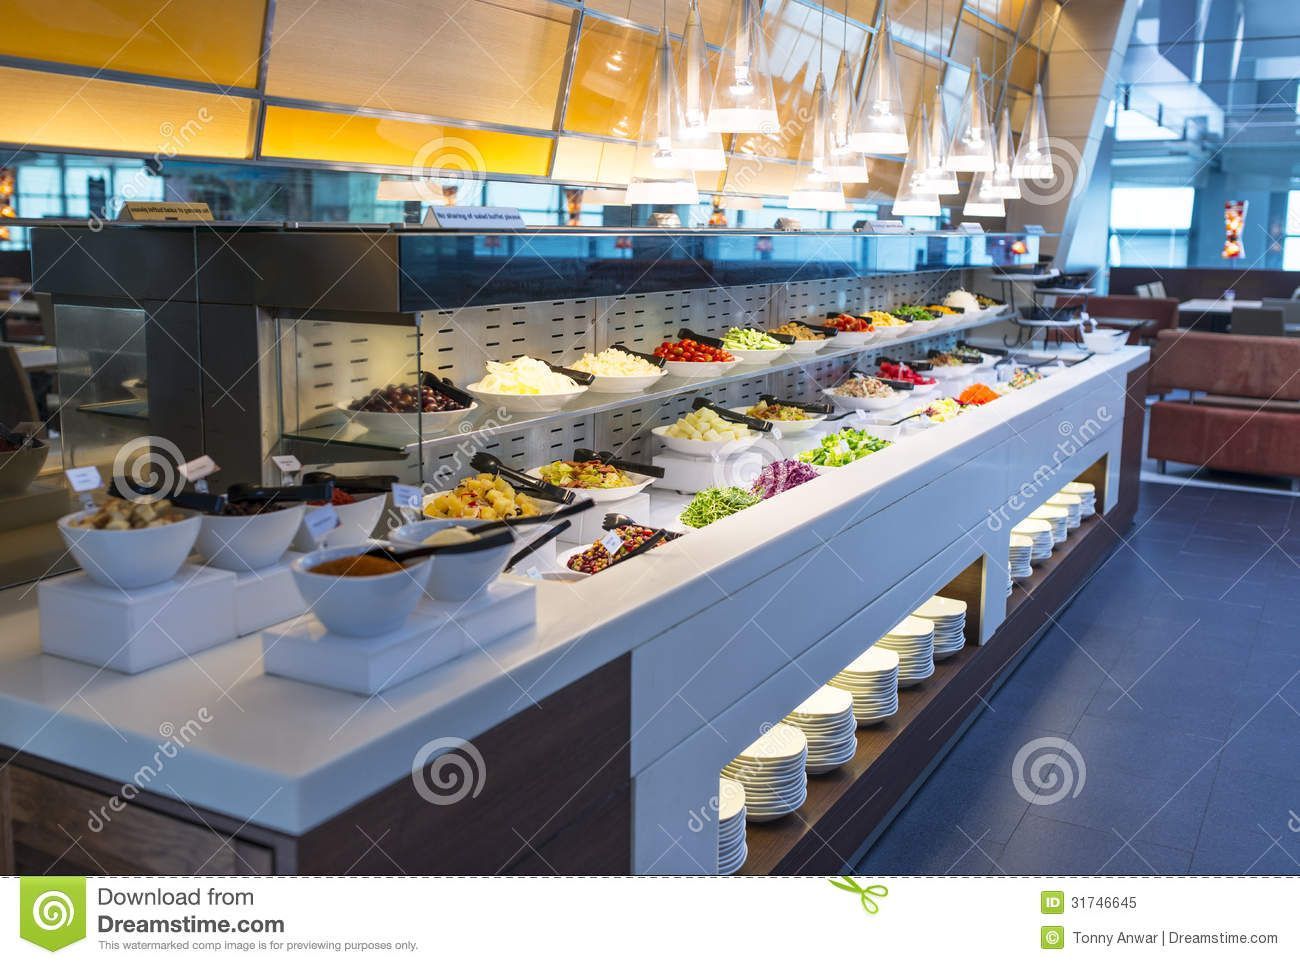 Restaurants Near Me With Salad Bar Best Restaurants Near Me